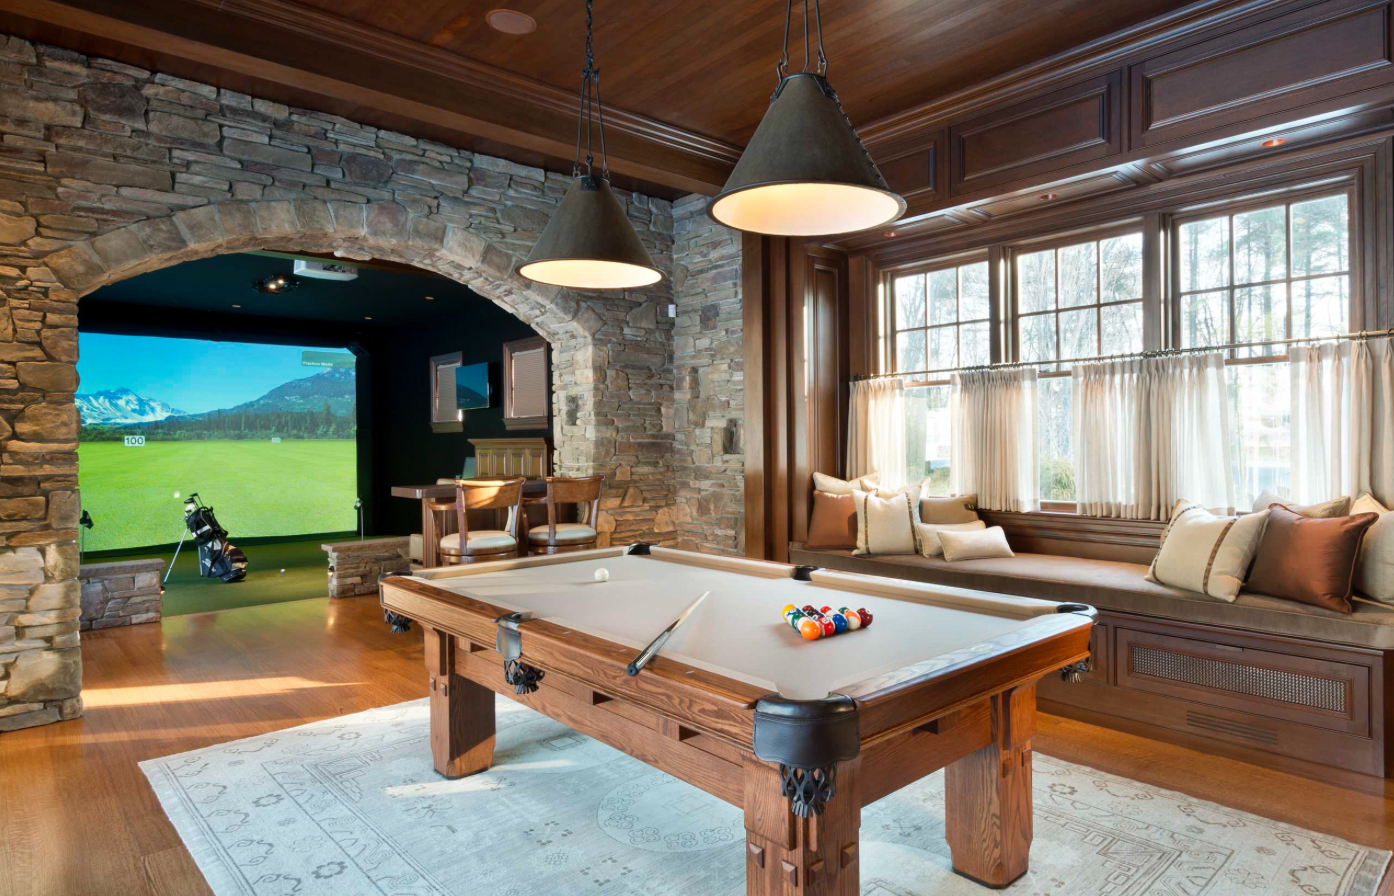 Best man cave installation ideas 23 - The Rustic Look With Brick Man Cave Idea